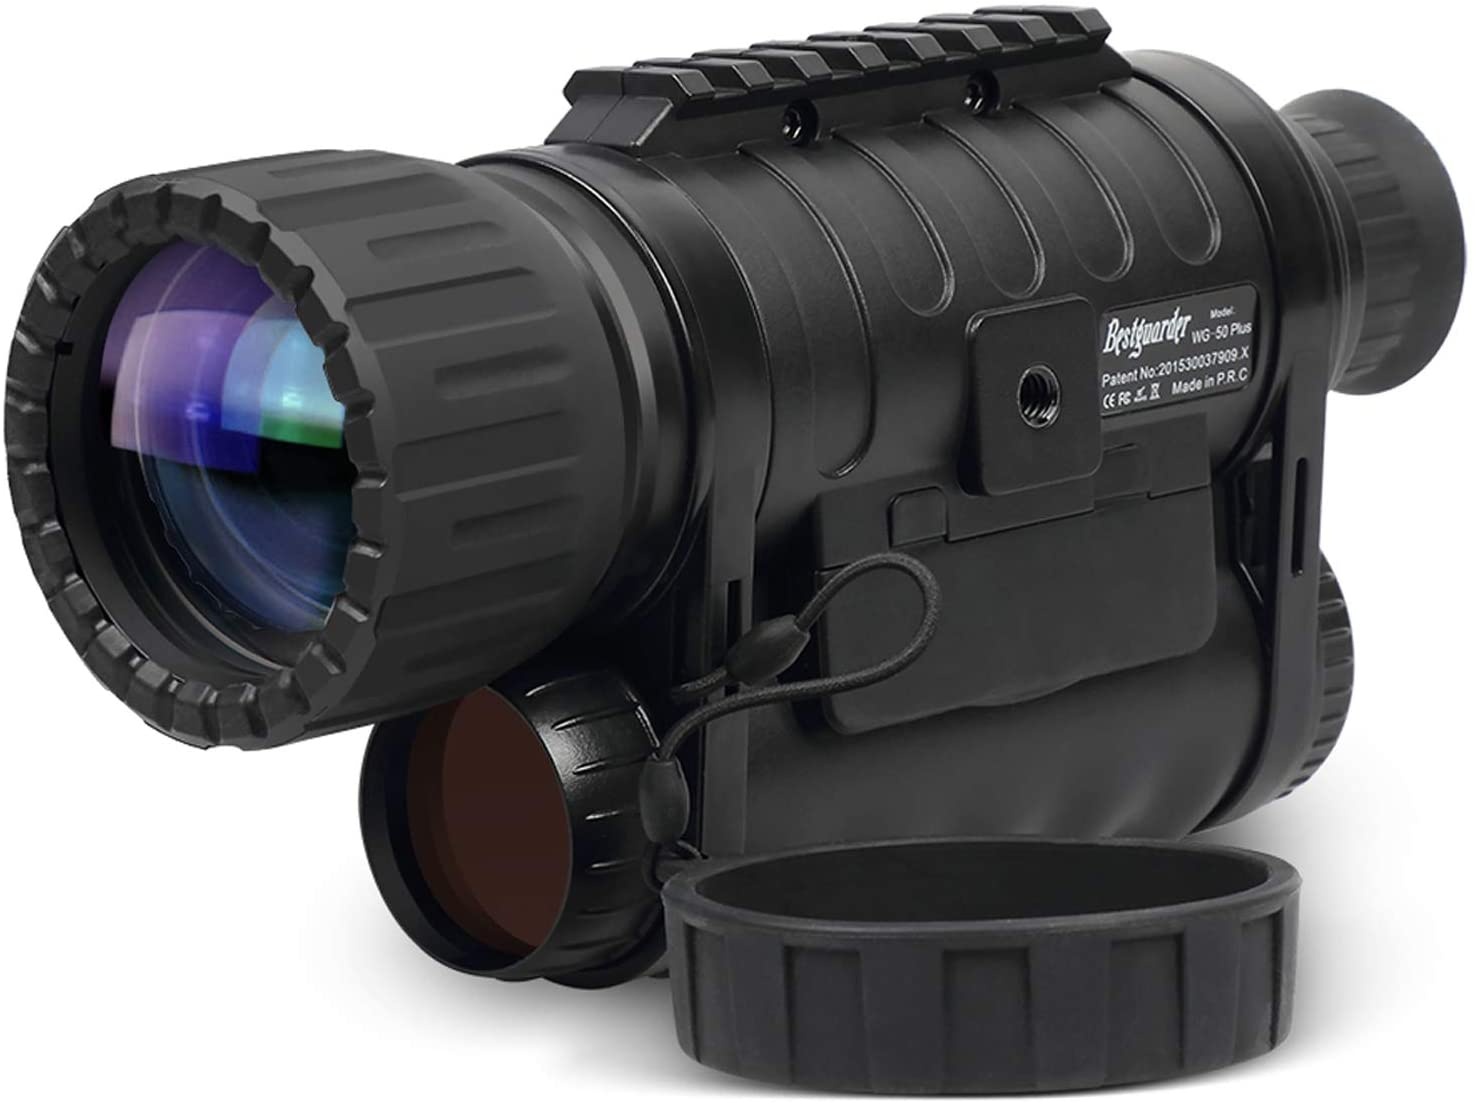 Infrared HD Night Vision Monocular with WiFi, Bestguarder WG-50 Plus,6-30X50MM Smart Digital Hunting Gear Can Takes 5mp Photo 720 Video from 1300ft Distance in Complete DarknessInfrared HD Night Vision Monocular with WiFi, Bestguarder WG-50 Plus,6-30X50MM Smart Digital Hunting Gear Can Takes 5mp Photo 720 Video from 1300ft Distance in Complete Darkness